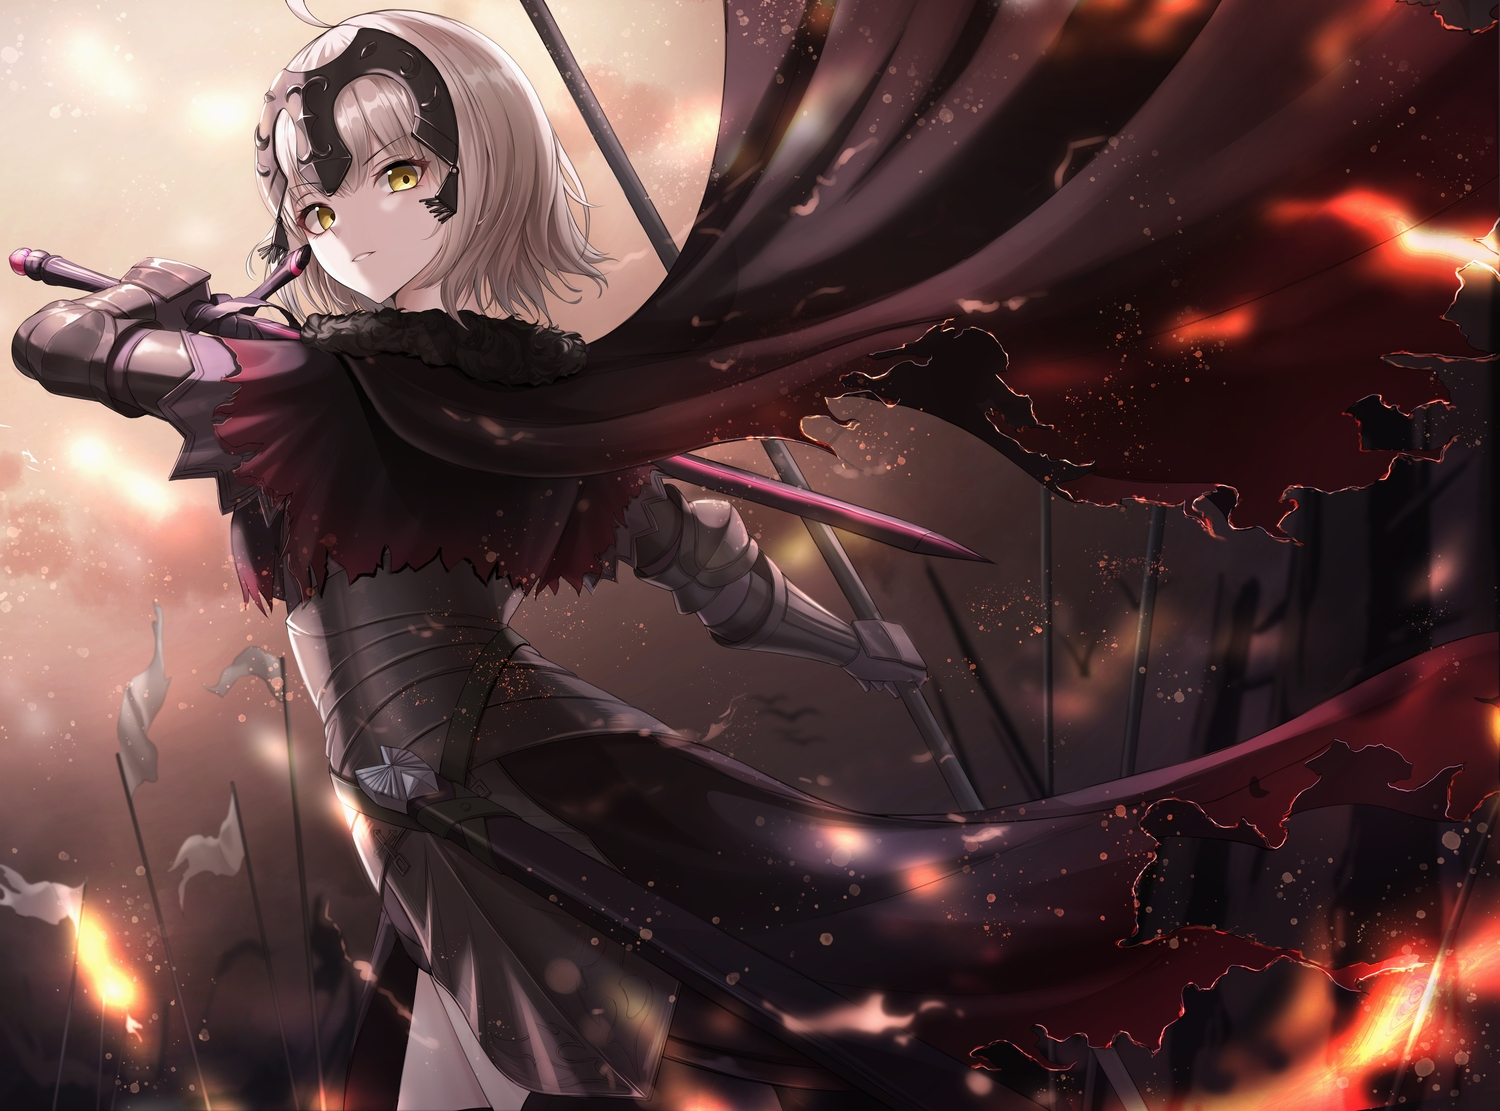 armor blonde_hair cape cow-ring fate/grand_order fate_(series) fire headdress jeanne_d'arc_alter jeanne_d'arc_(fate) short_hair sword weapon yellow_eyes